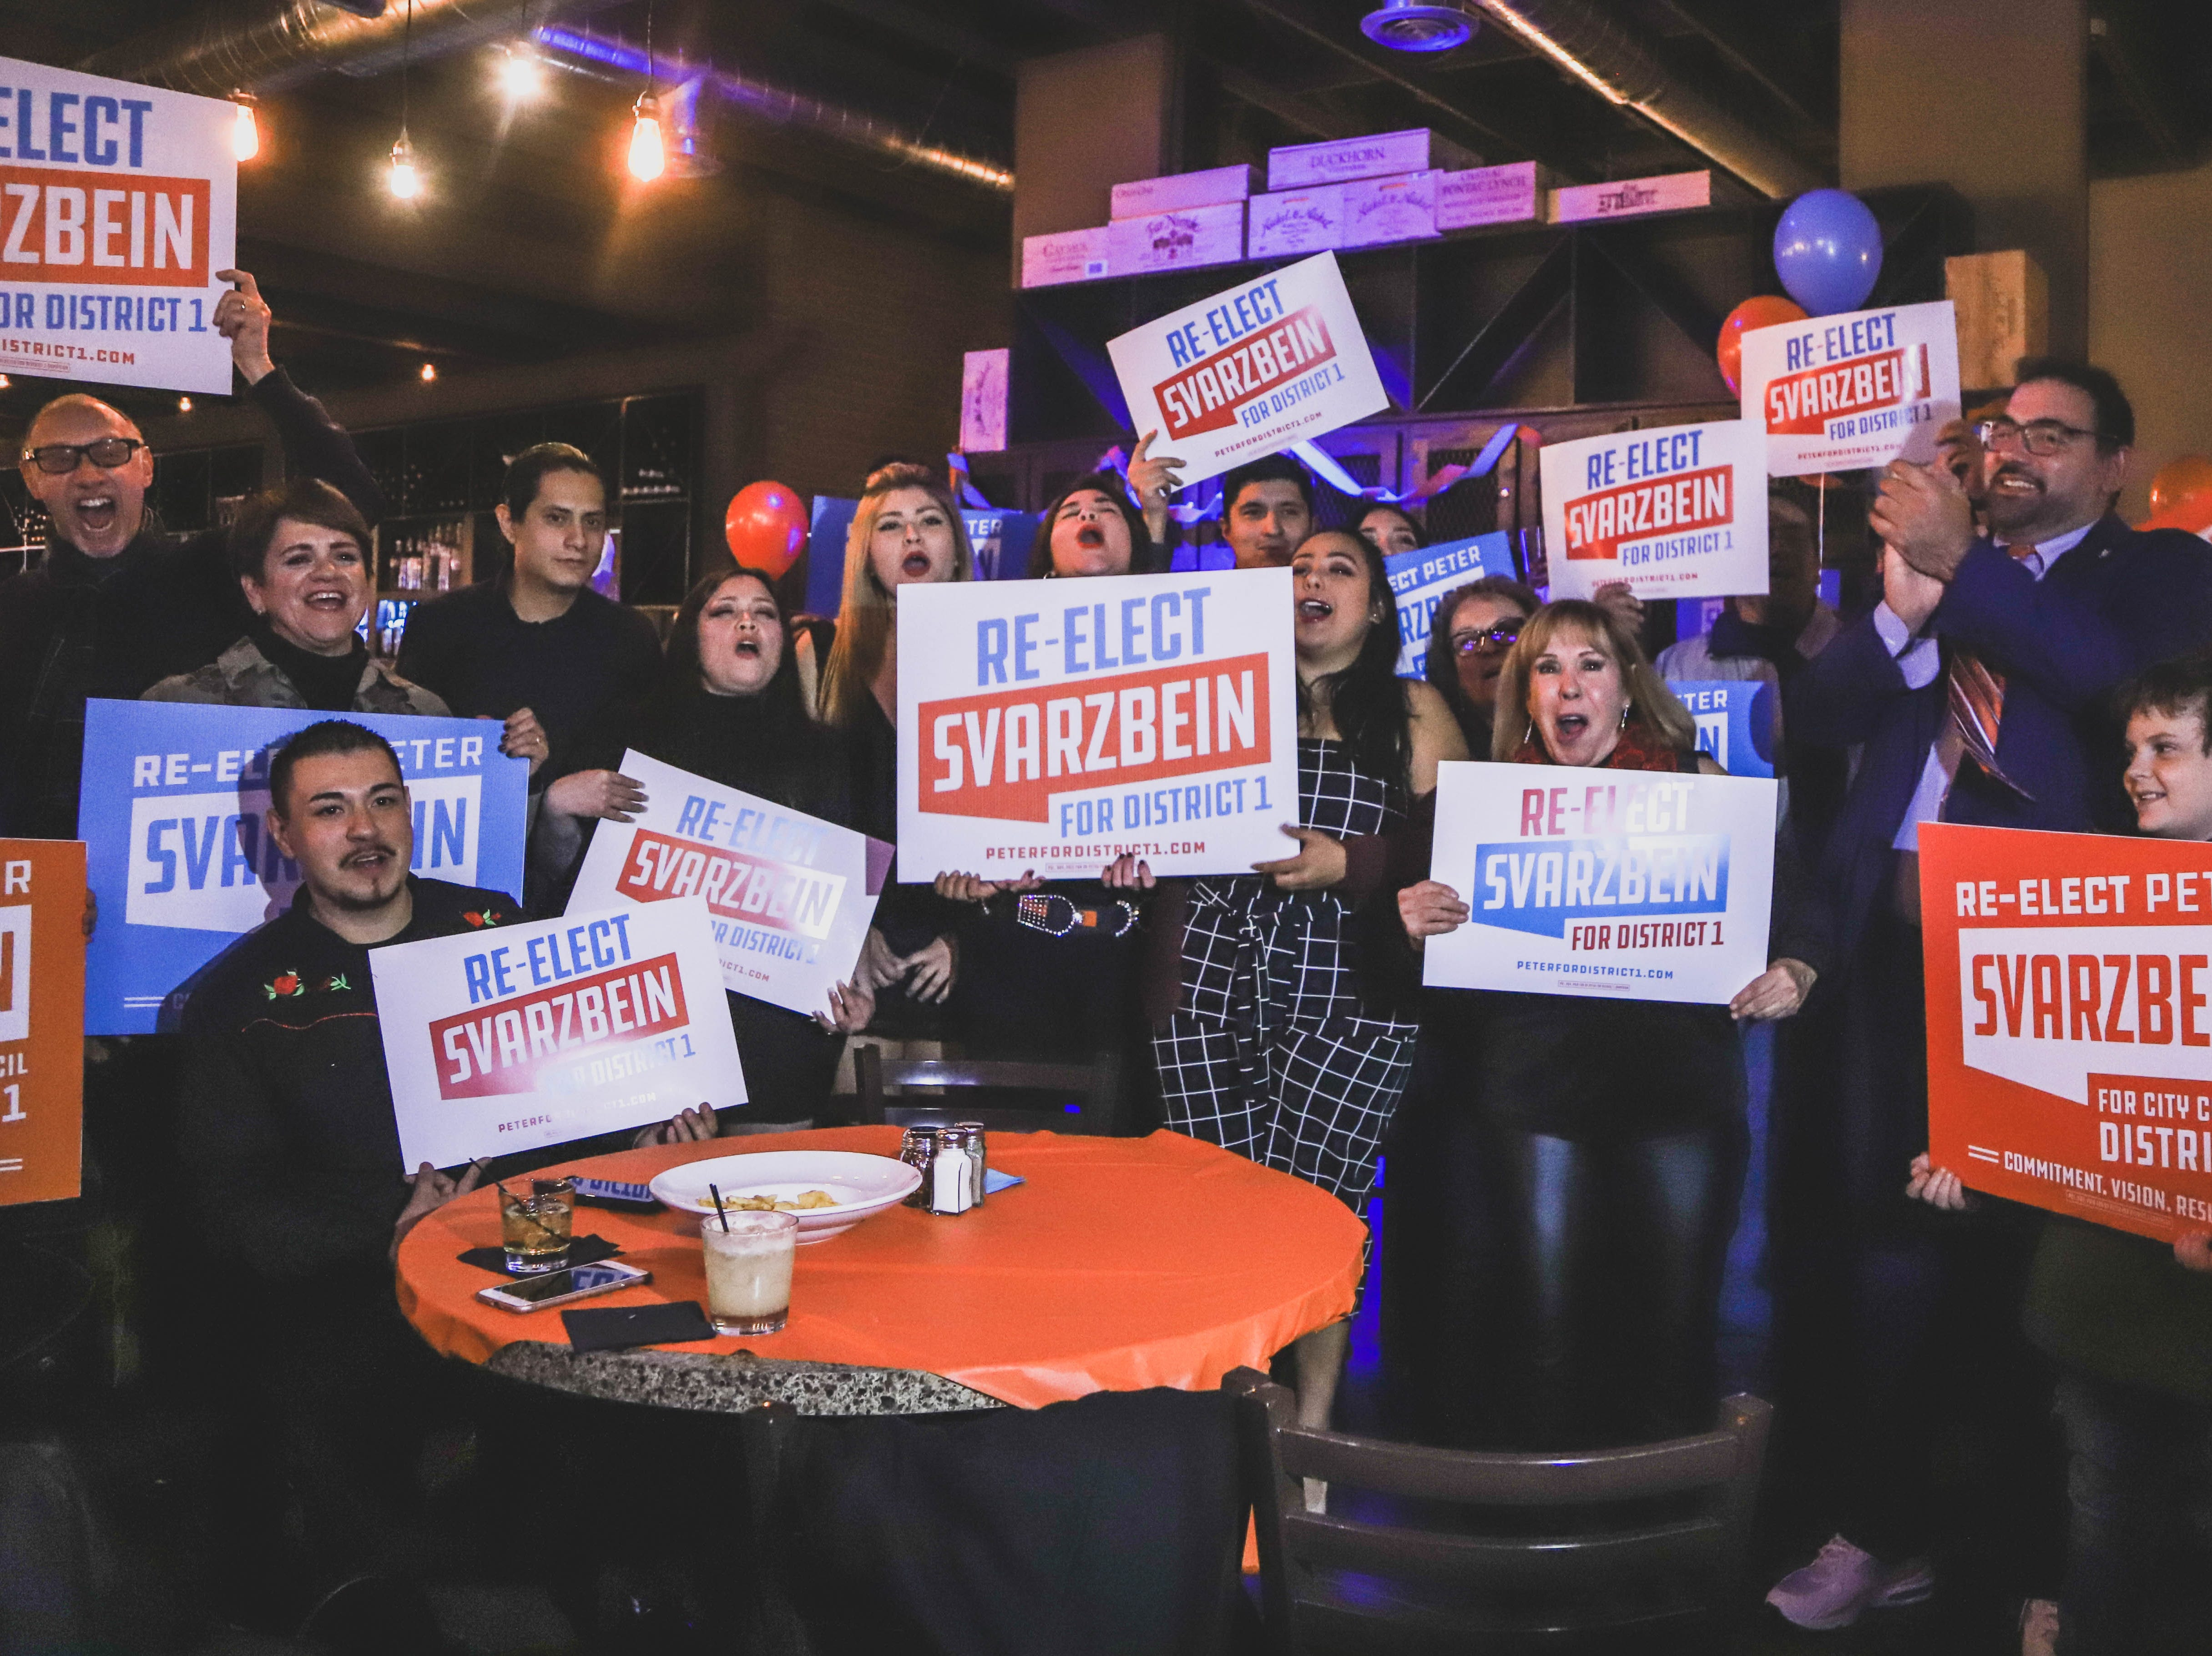 District 1 City Rep. District 1 Peter Svarzbein, second from right,celebrates his re-election at his watch party Saturday, Dec. 15, 2018, at Holy Grail.